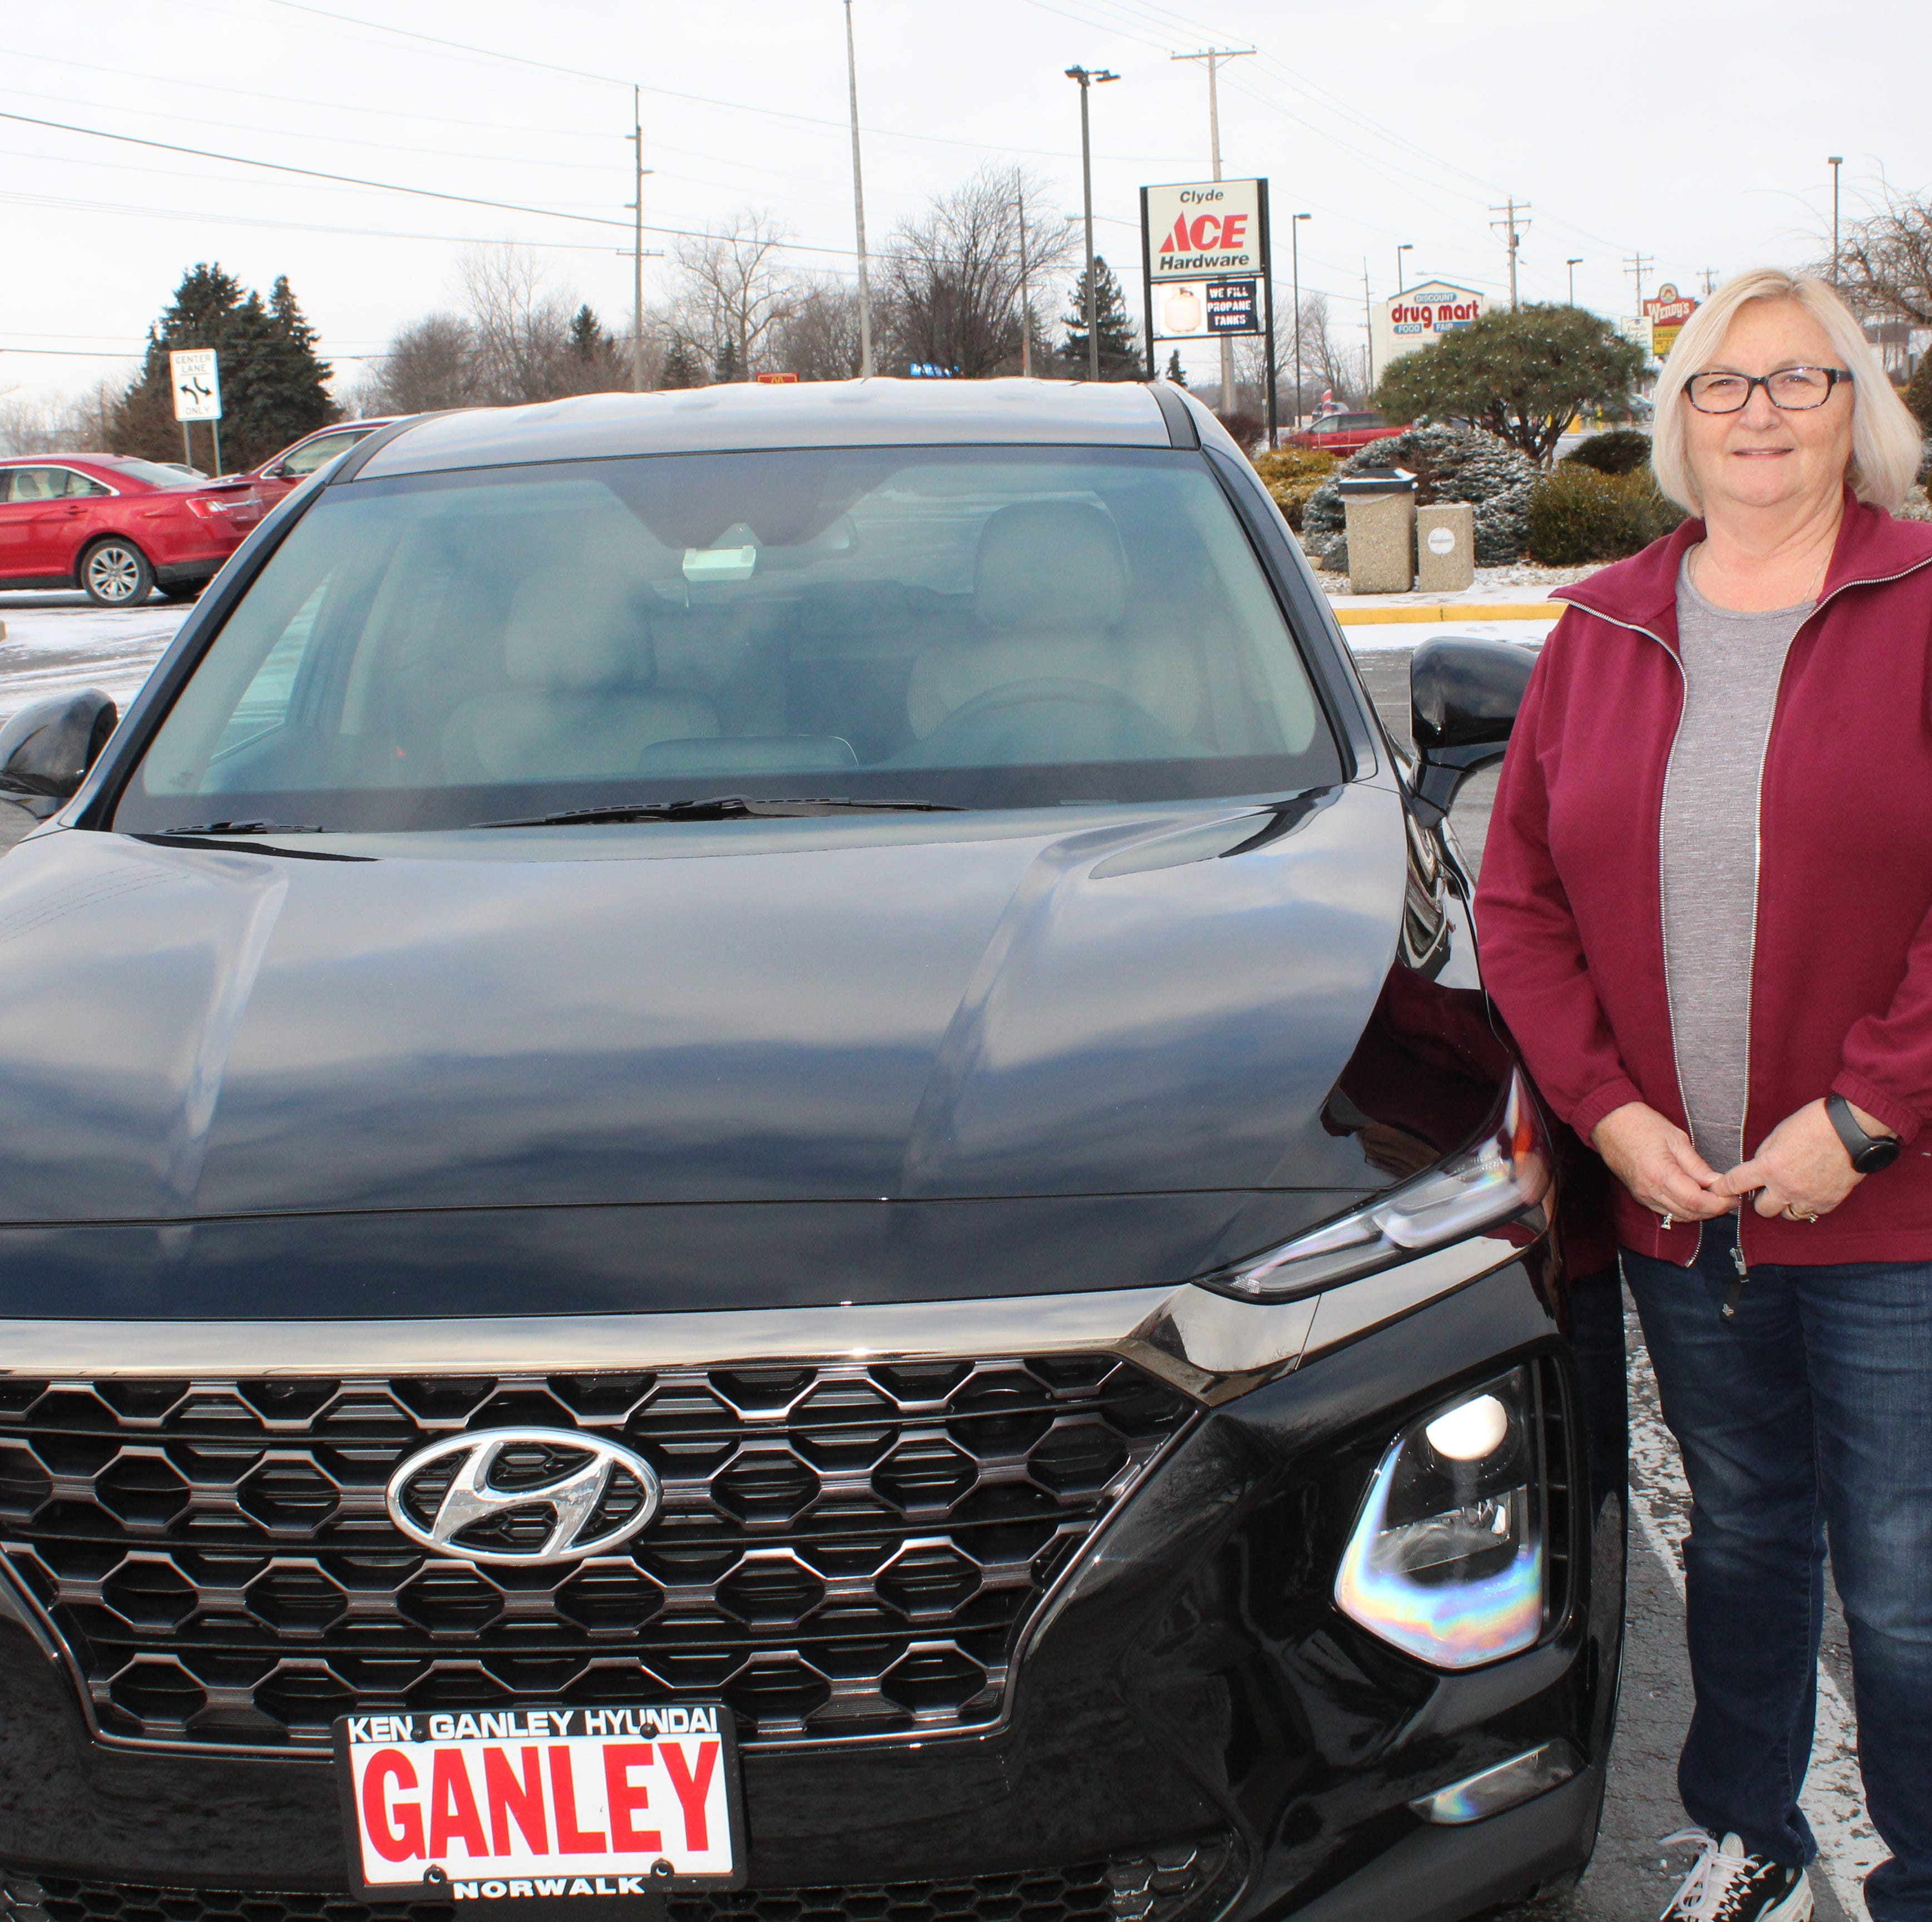 Local woman wins car in McDonald's giveaway game